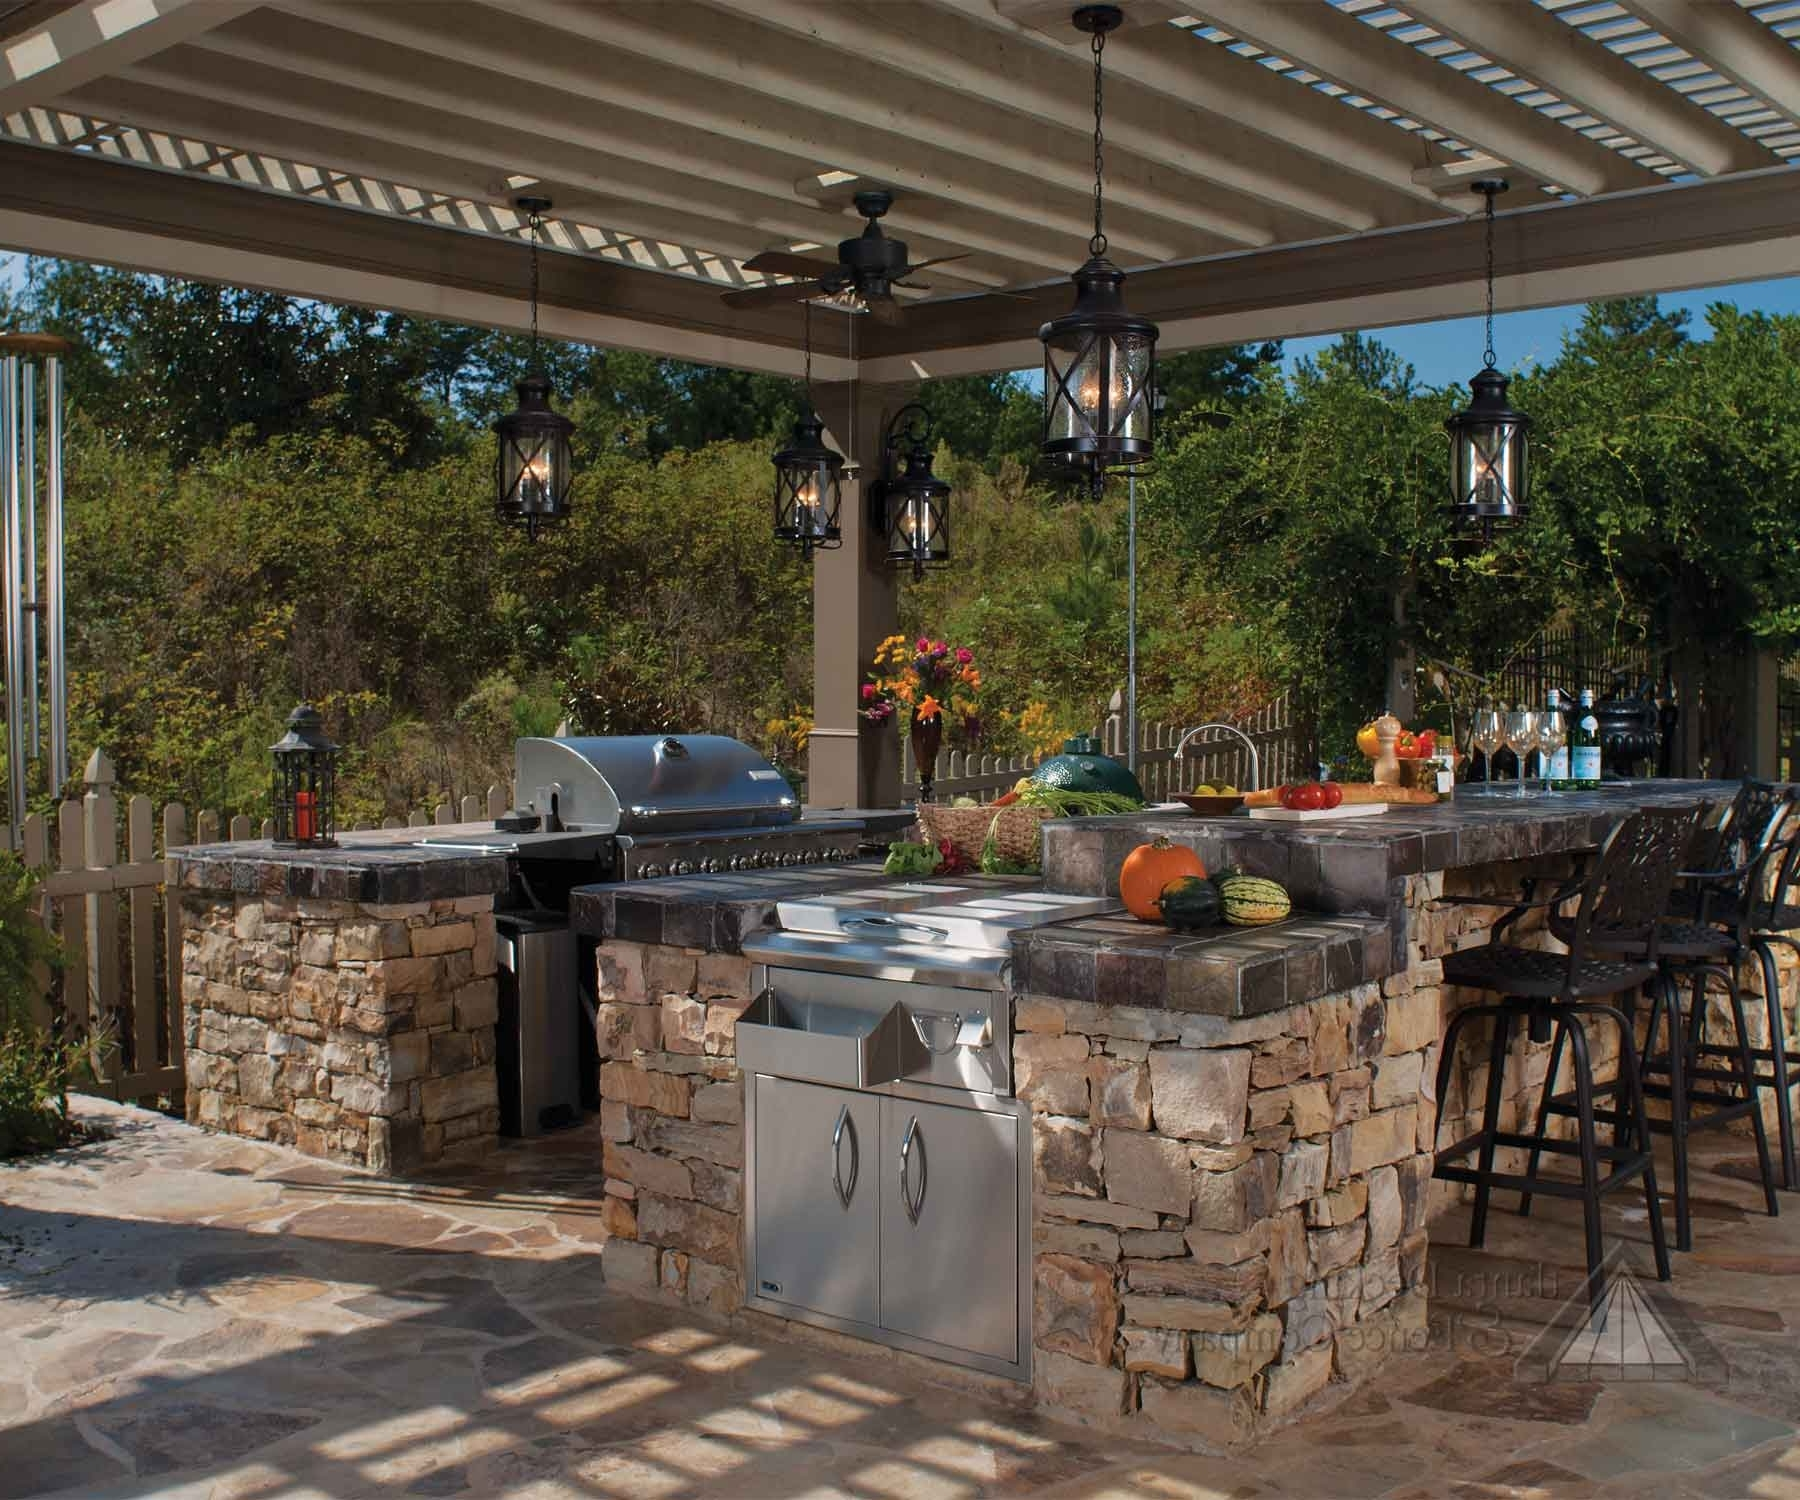 Trendy Outdoor Hanging Lights For Pergola With Lantern Shaped Hanging Outdoor Pendant Lights In An Outdoor Kitchen (View 12 of 20)